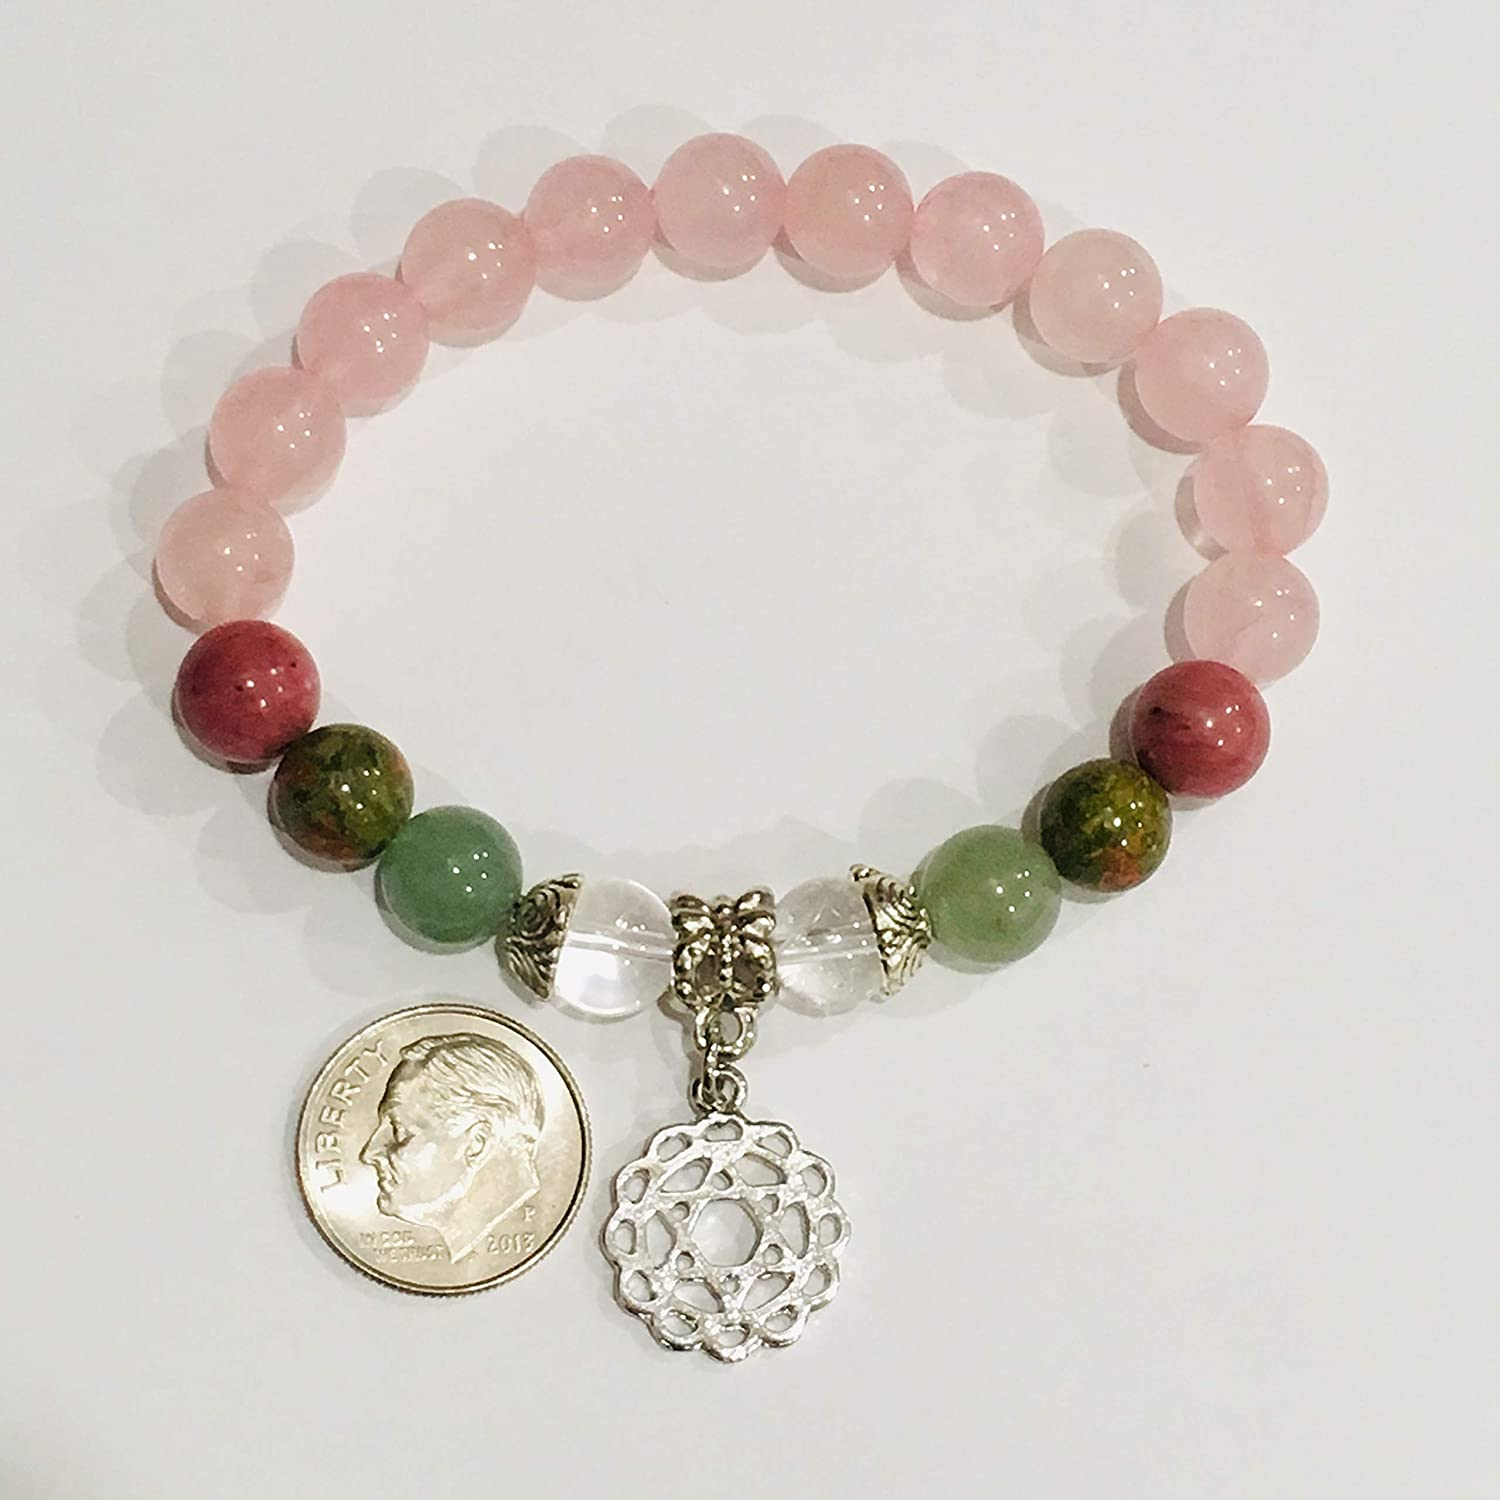 Heart Health Bracelet with Natural Gemstones for Wellness Comfort Protection and Reiki Charged